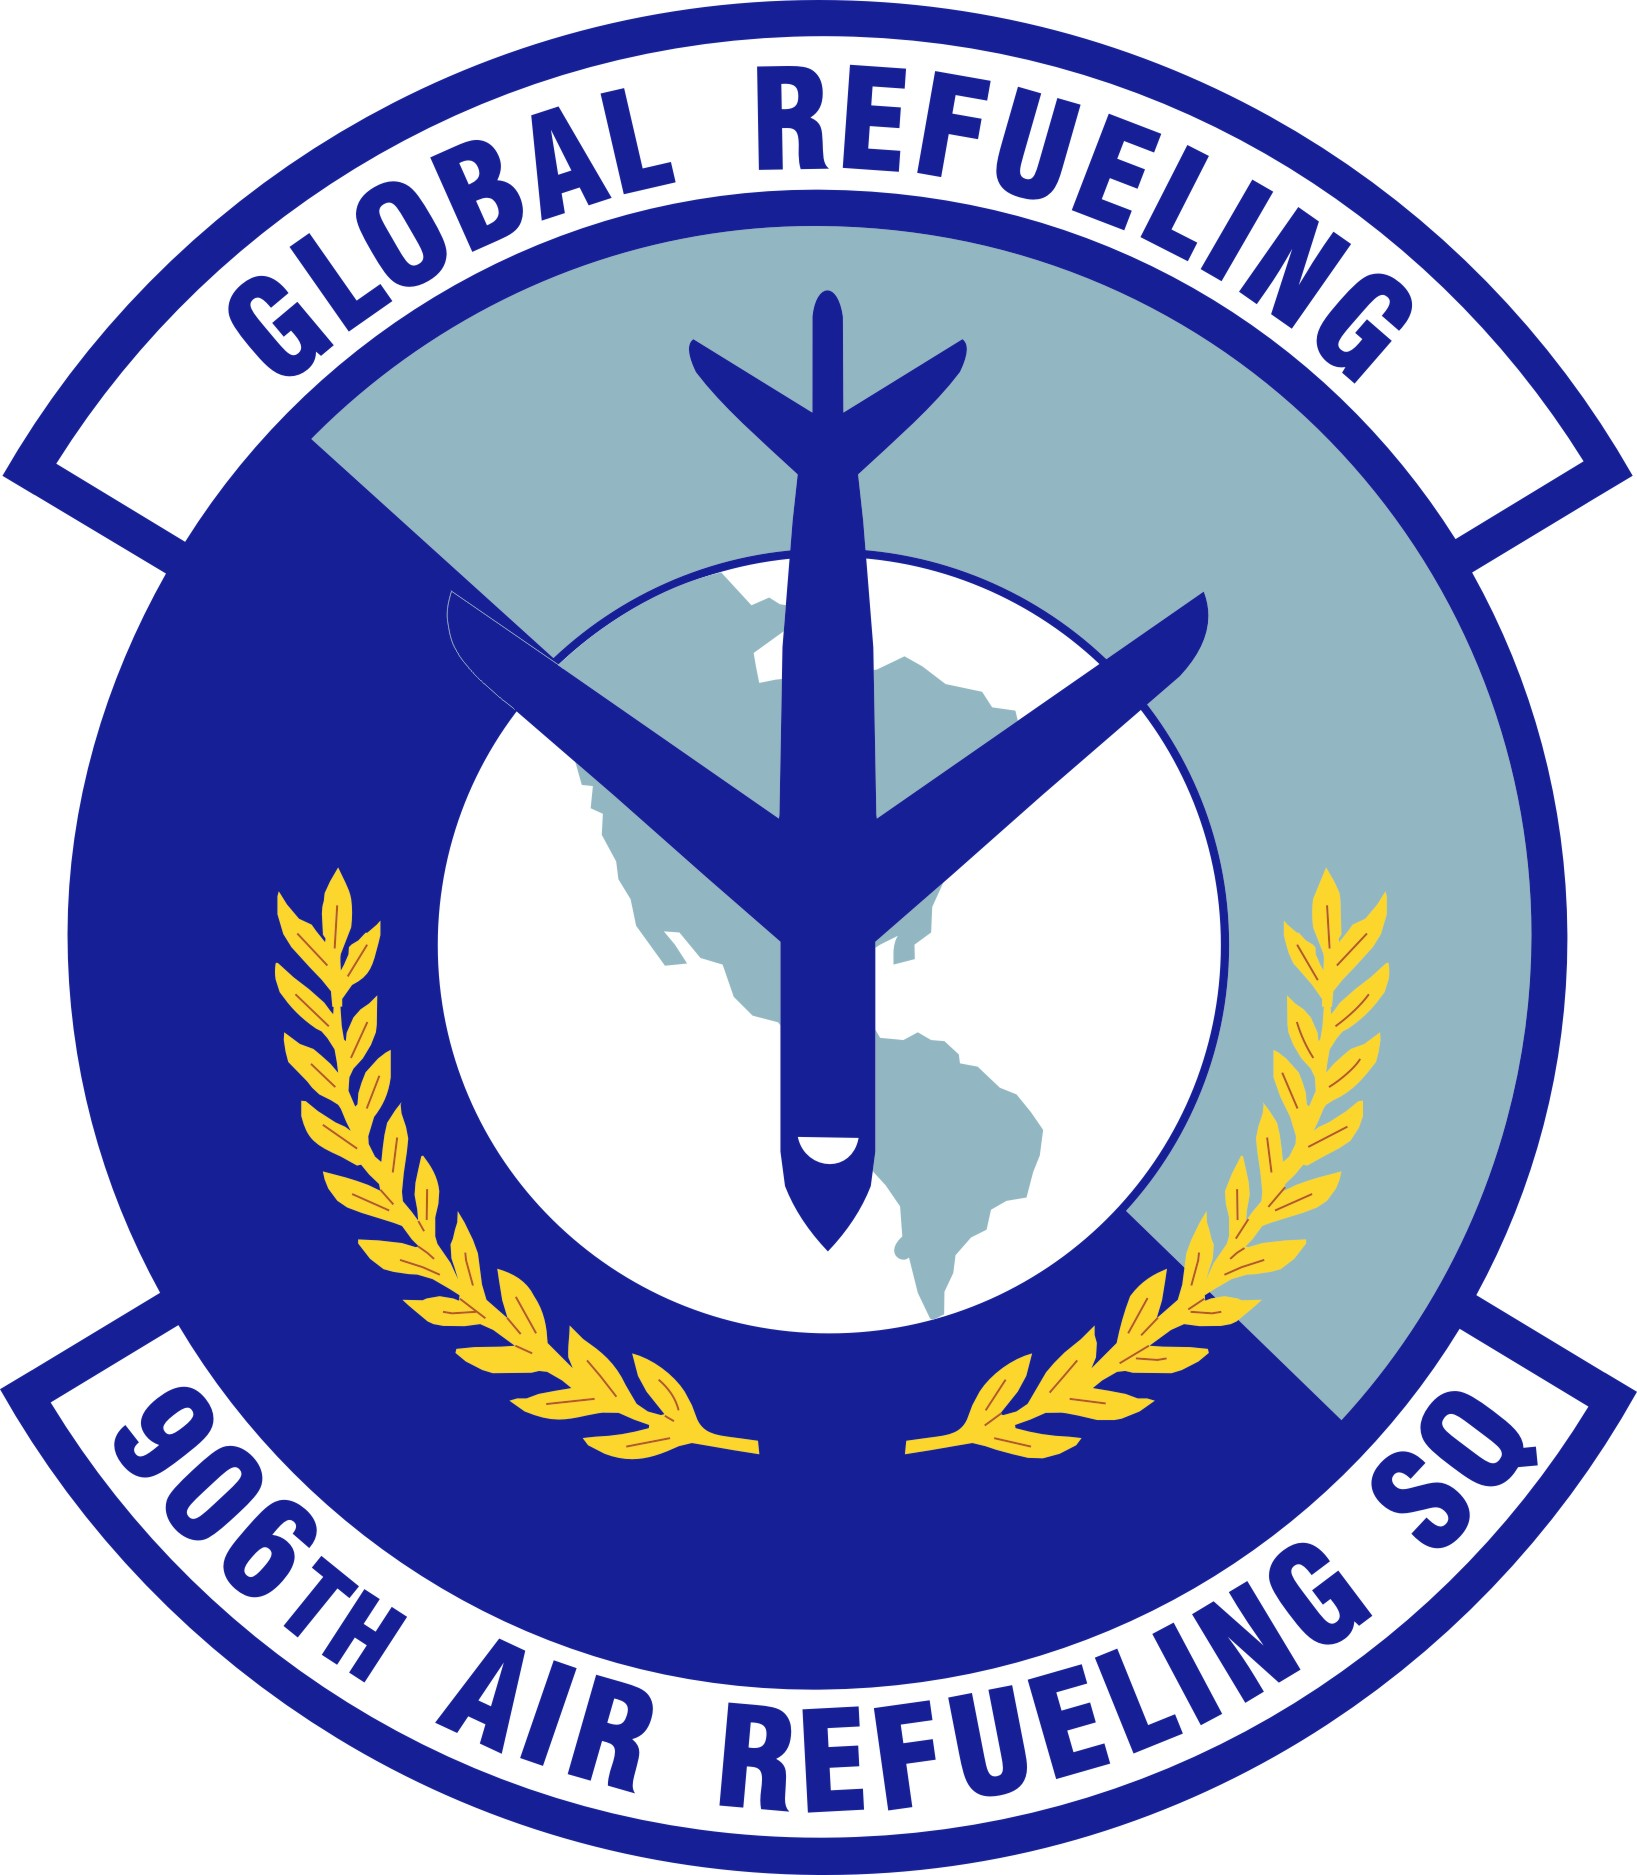 906th Air Refueling Squadron Gets Updated Patch